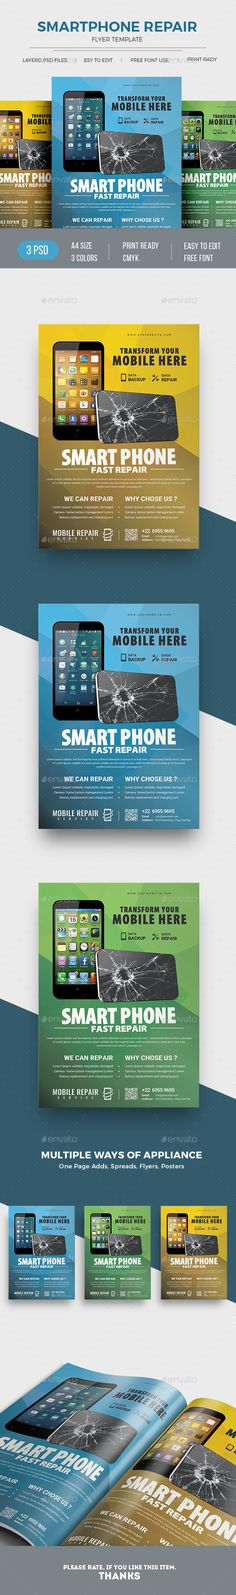 Computer Repair Flyer Template | Computer Repair, Pc Repair And Tech